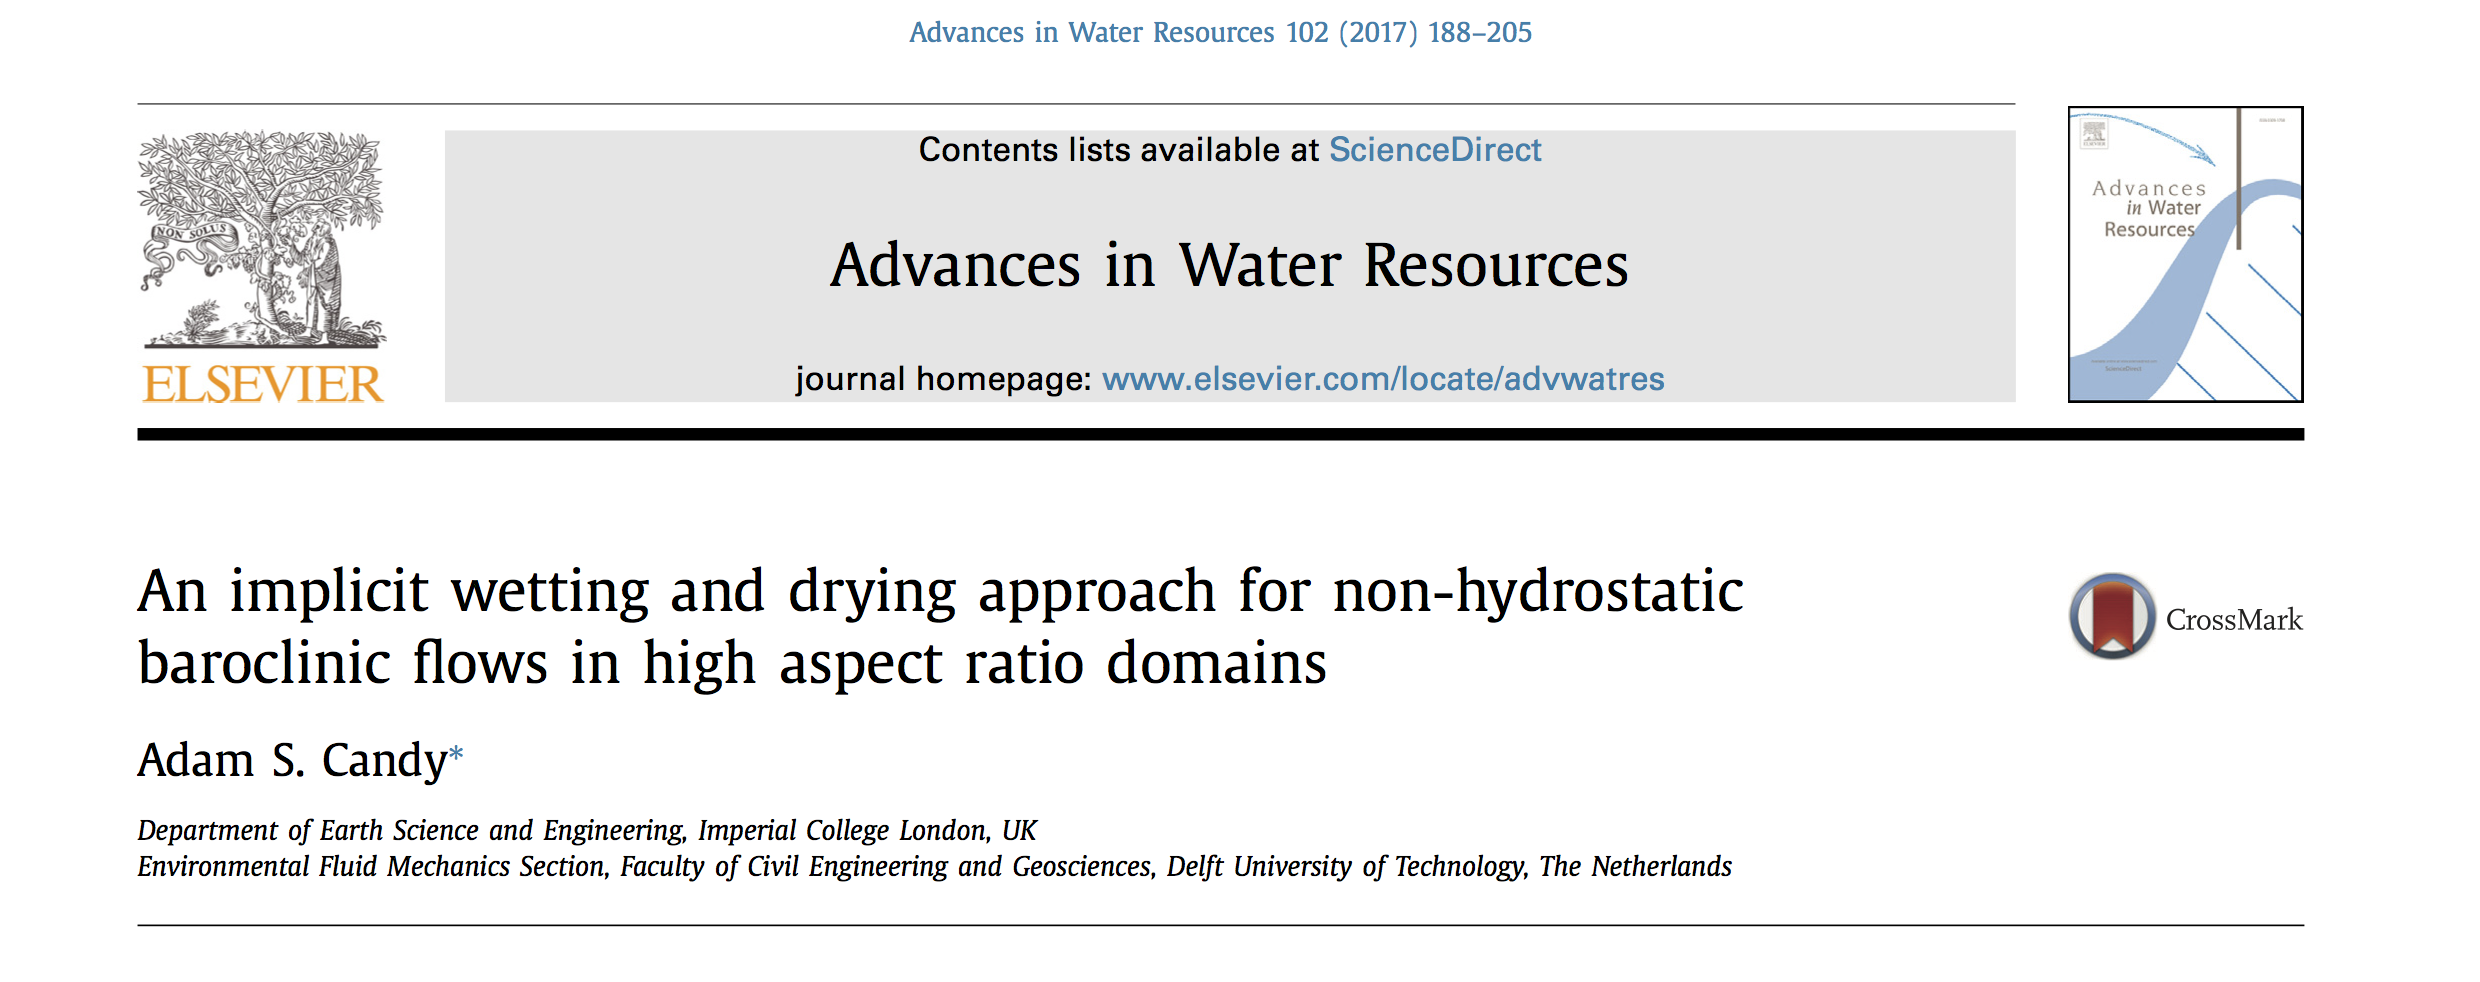 Published paper: An implicit wetting and drying approach for non-hydrostatic baroclinic flows in high aspect ratio domains